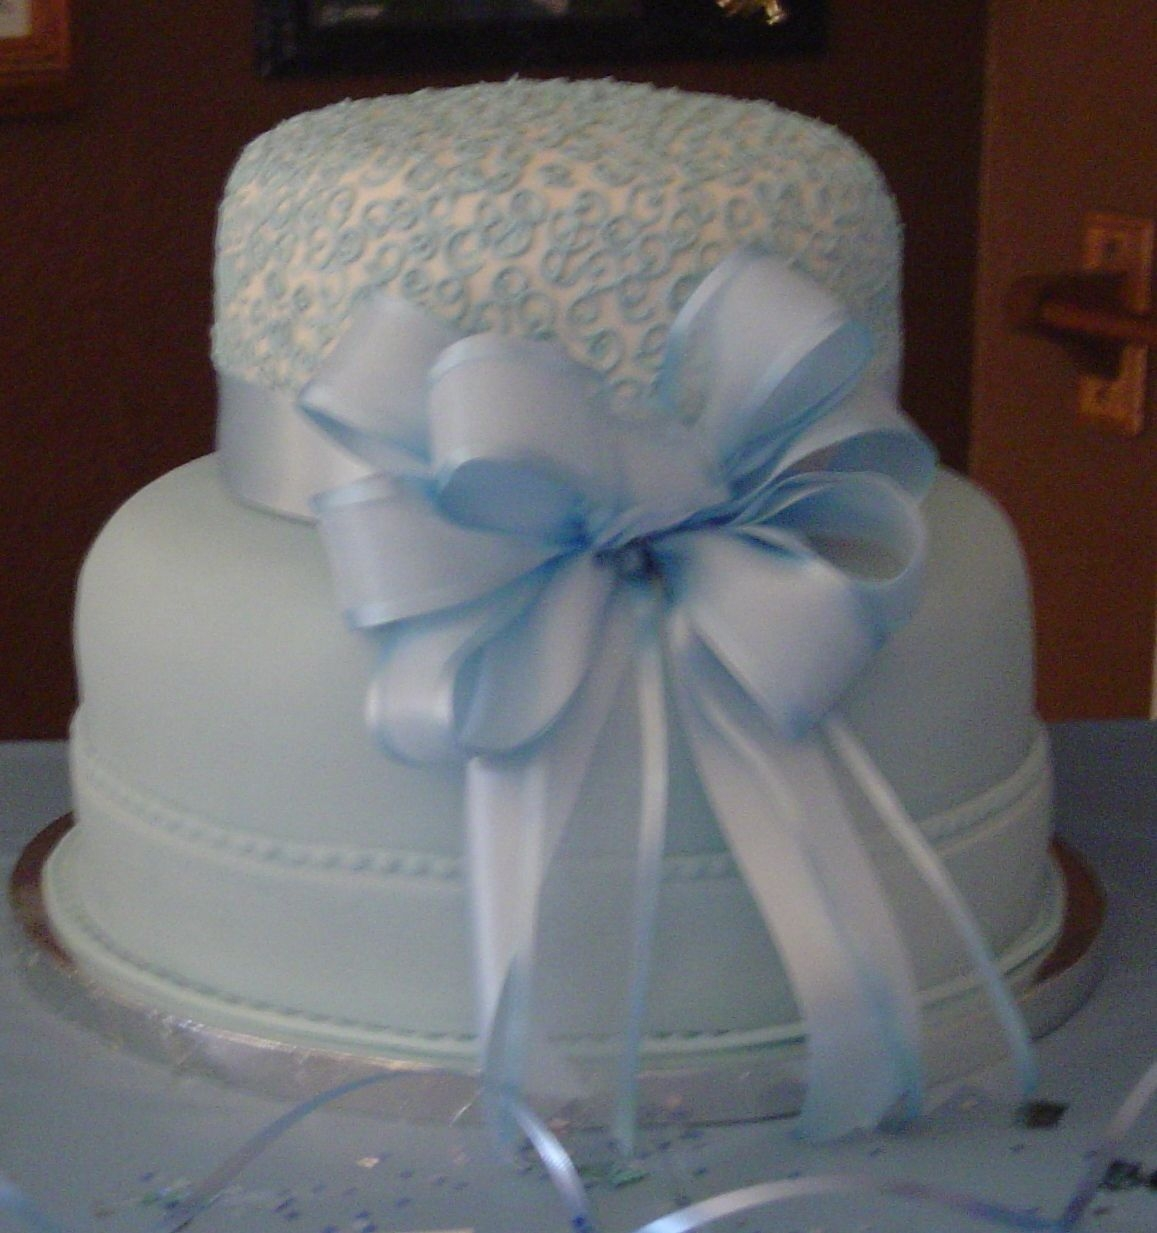 Black Tie Affair/2006 Wilton Yearbook I did this Wilton cake designg in baby blue for my friends baby shower. My friend knew she was having a boy. He was born on Feb 9, 2006....